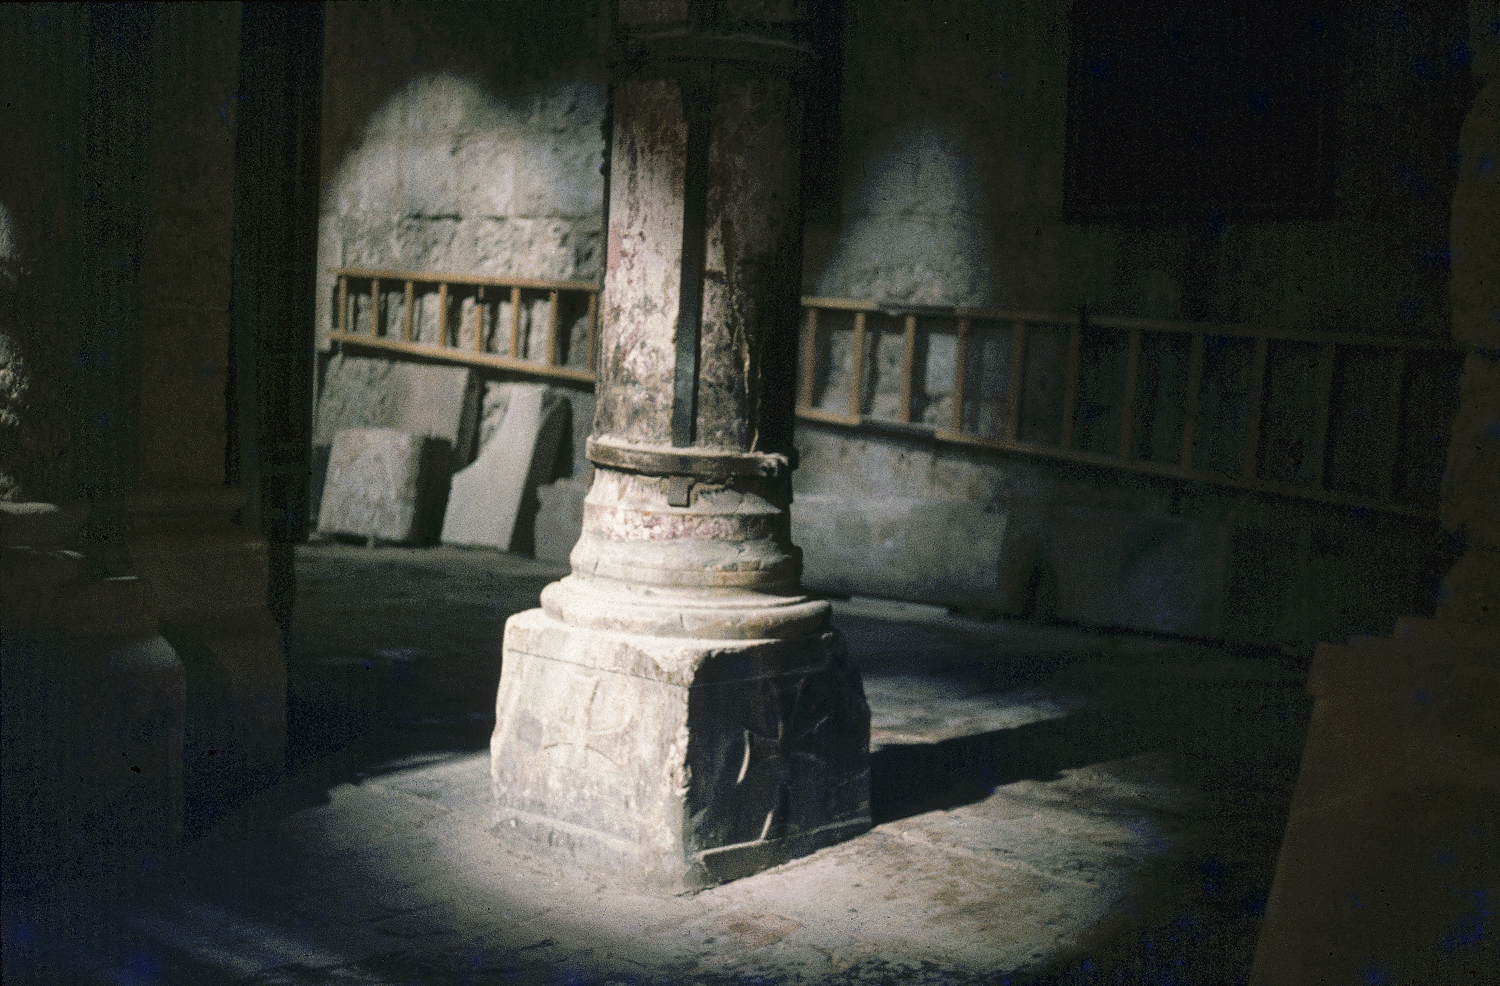 Church of the Holy Sepulchre, Jerusalem, 1981